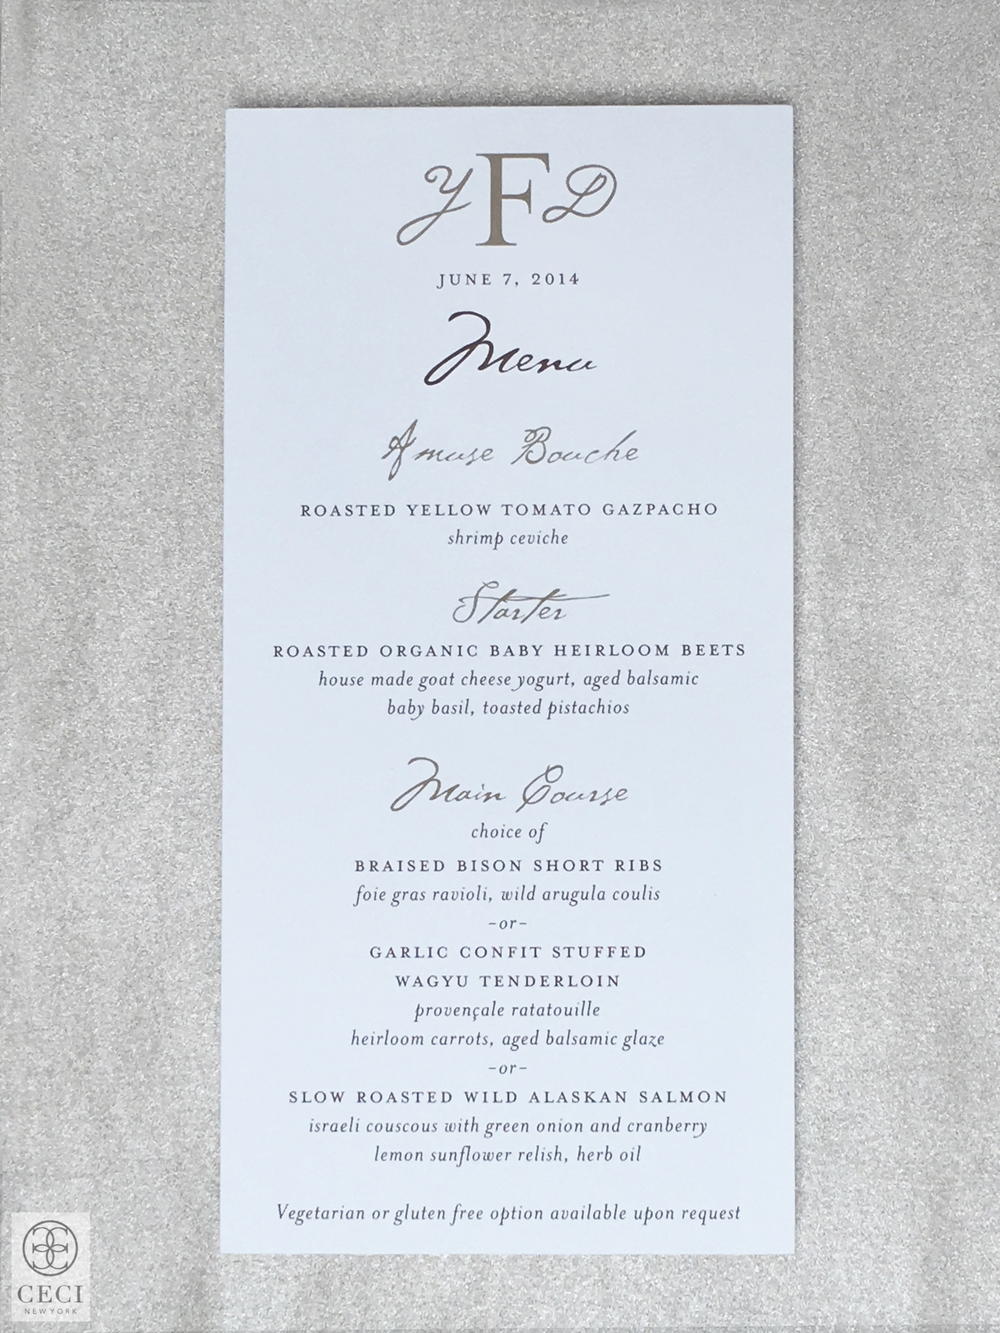 Ceci_New_York_Lyndsey_Hamilton_Events_Invitations_Wedding_Amangani_Elegance_Gold_Foil_Letterpress_Classic_Stamping_Custom_Couture_Personalized-22.jpg